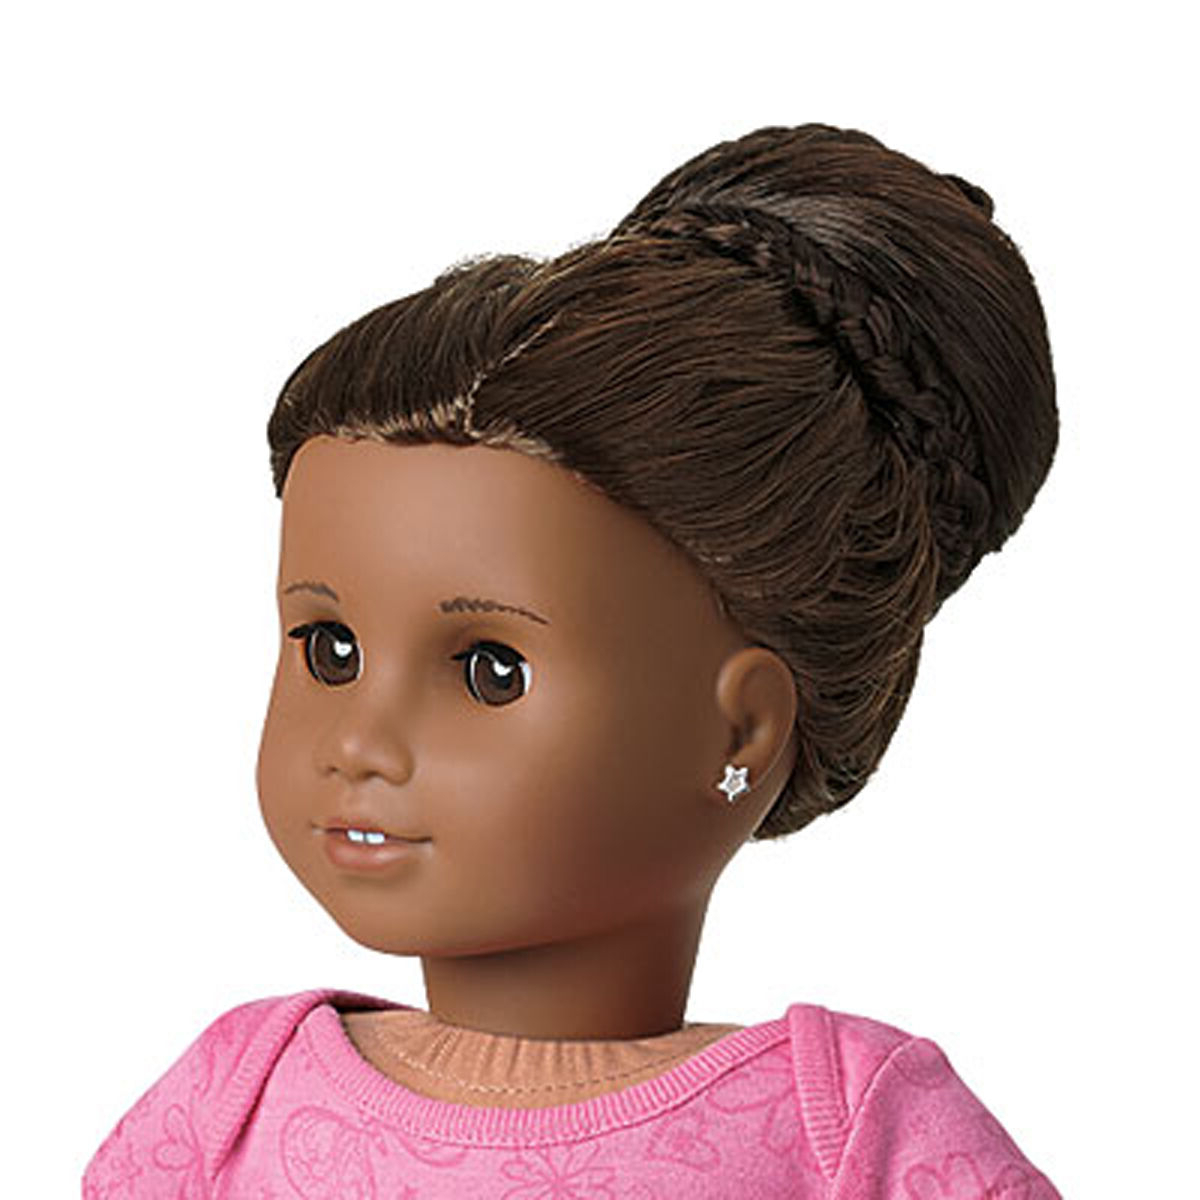 American Girl Chic Dark Brown Bun Doll Hair Extention Updo Crisscross Braids For Well Known Criss Cross Braid Bun Hairstyles (Gallery 16 of 20)